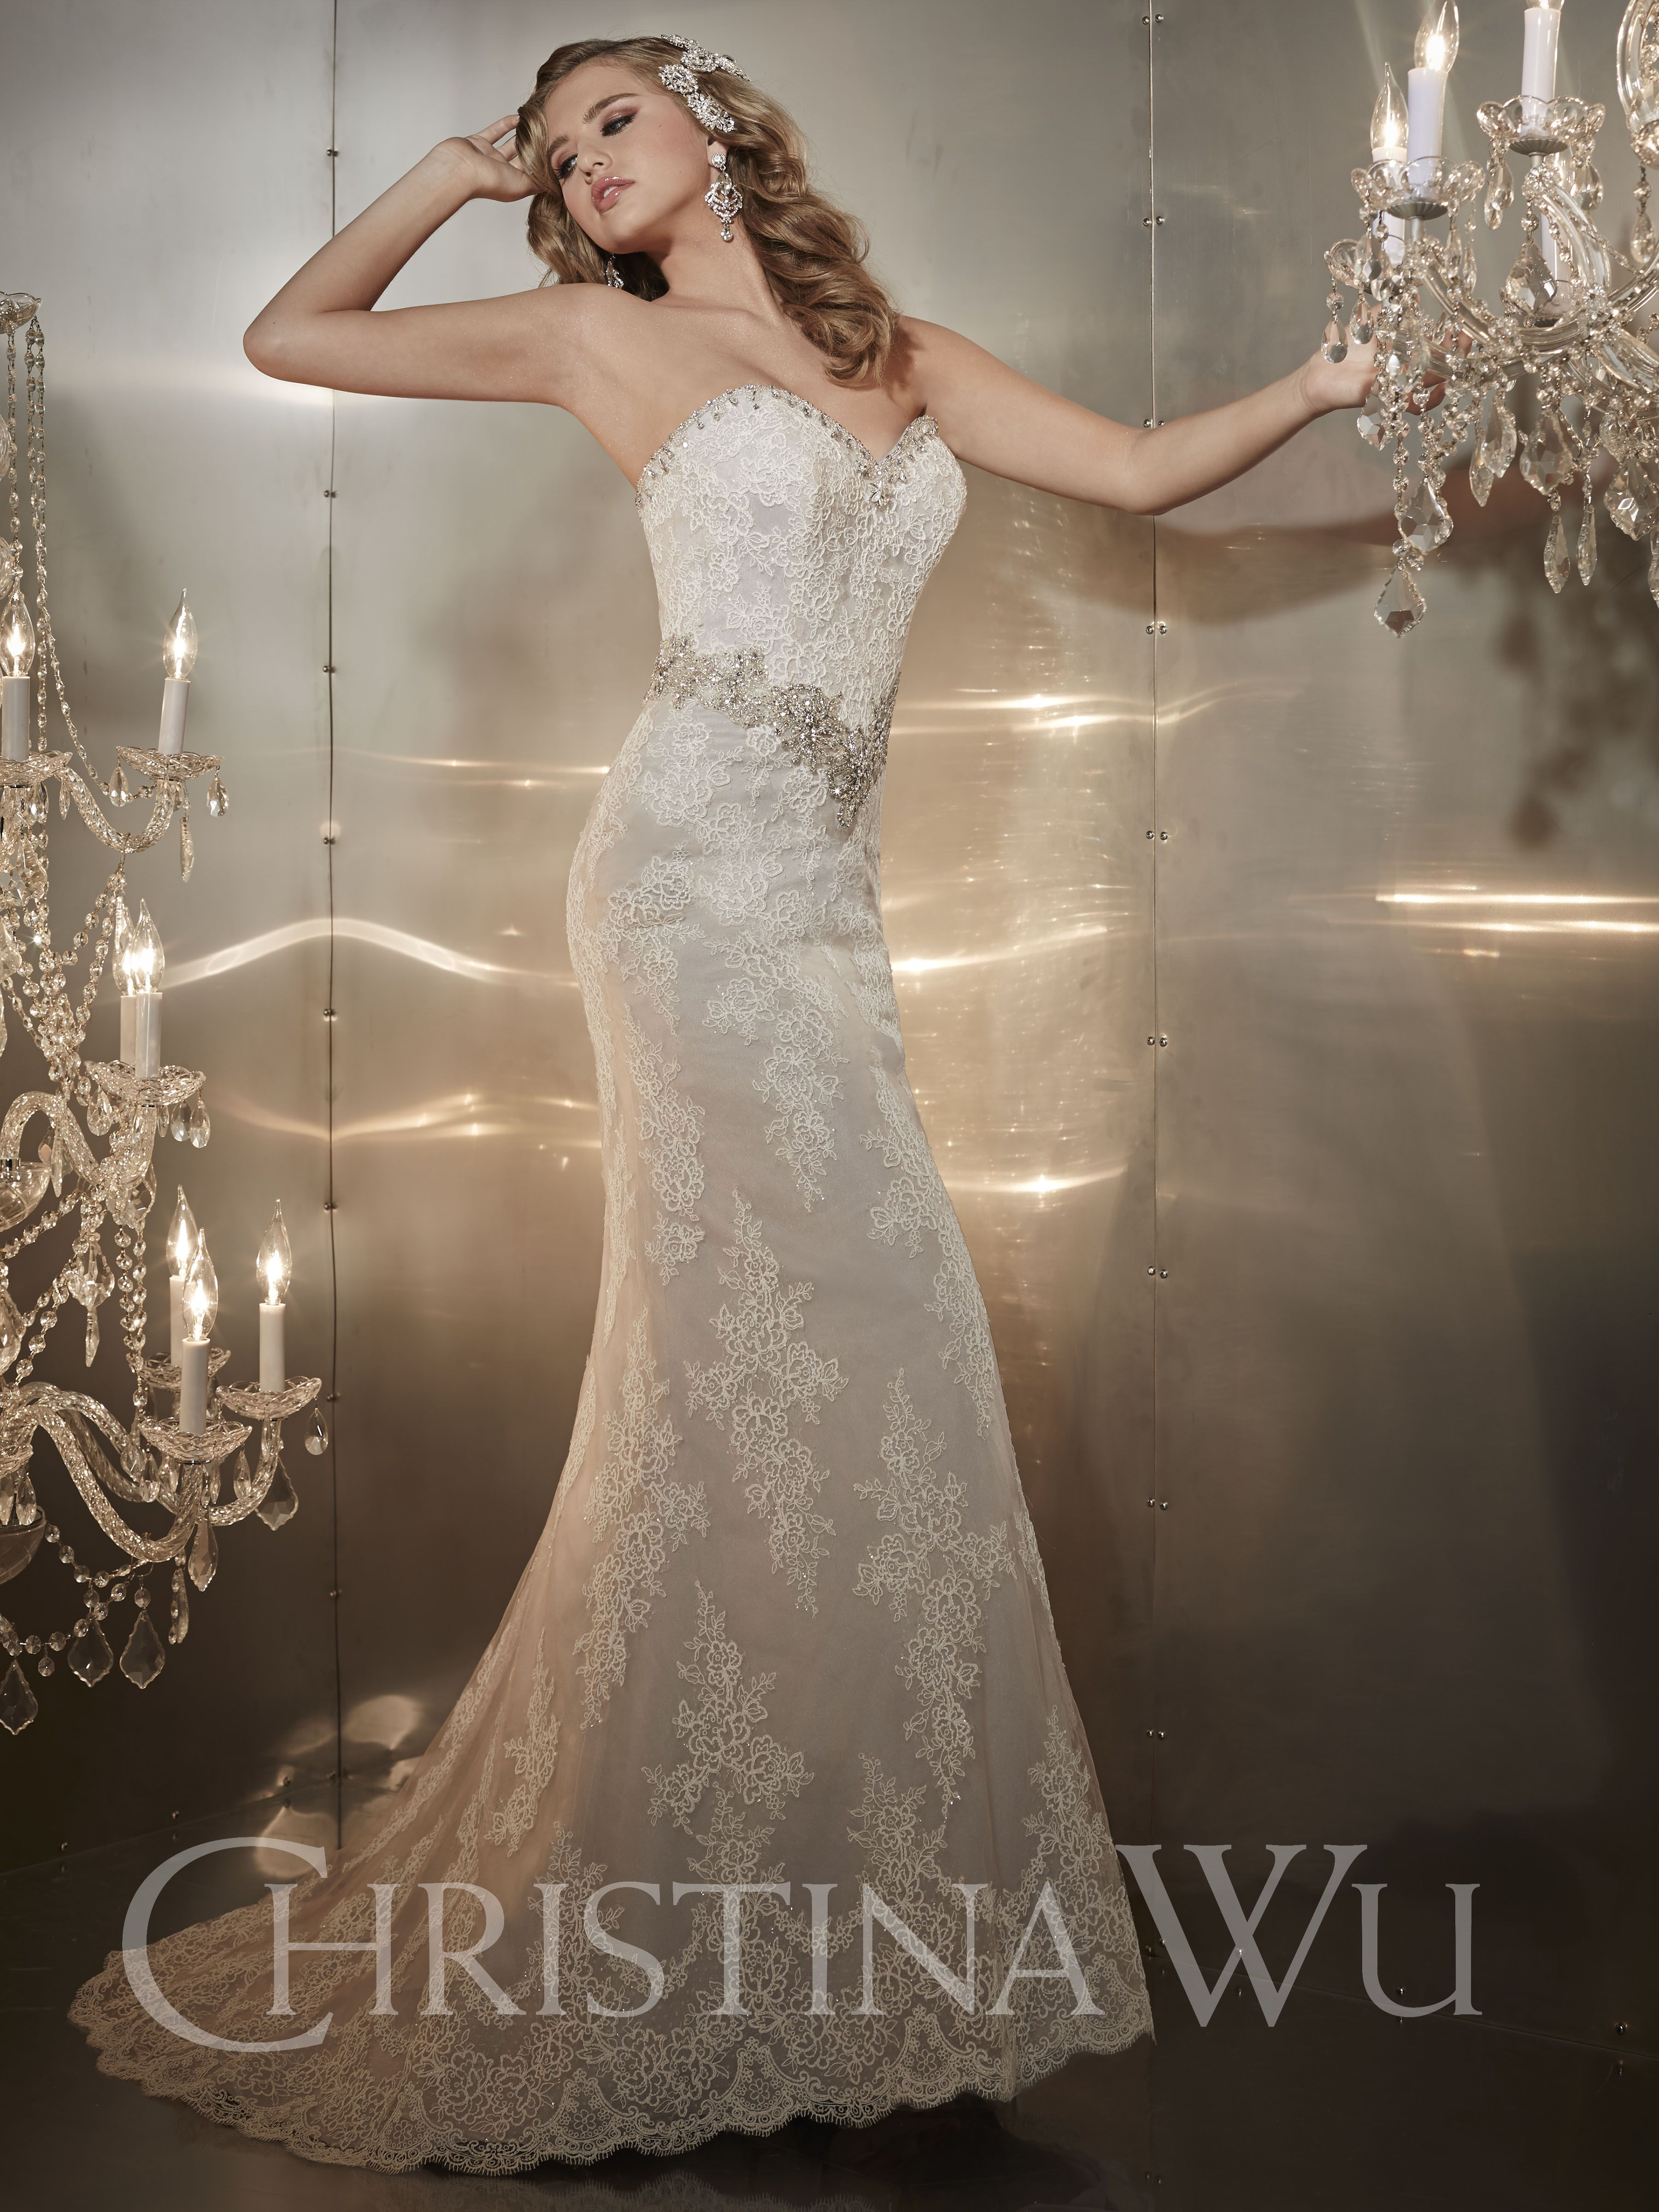 Christina wu fall available at bff bridal boutique